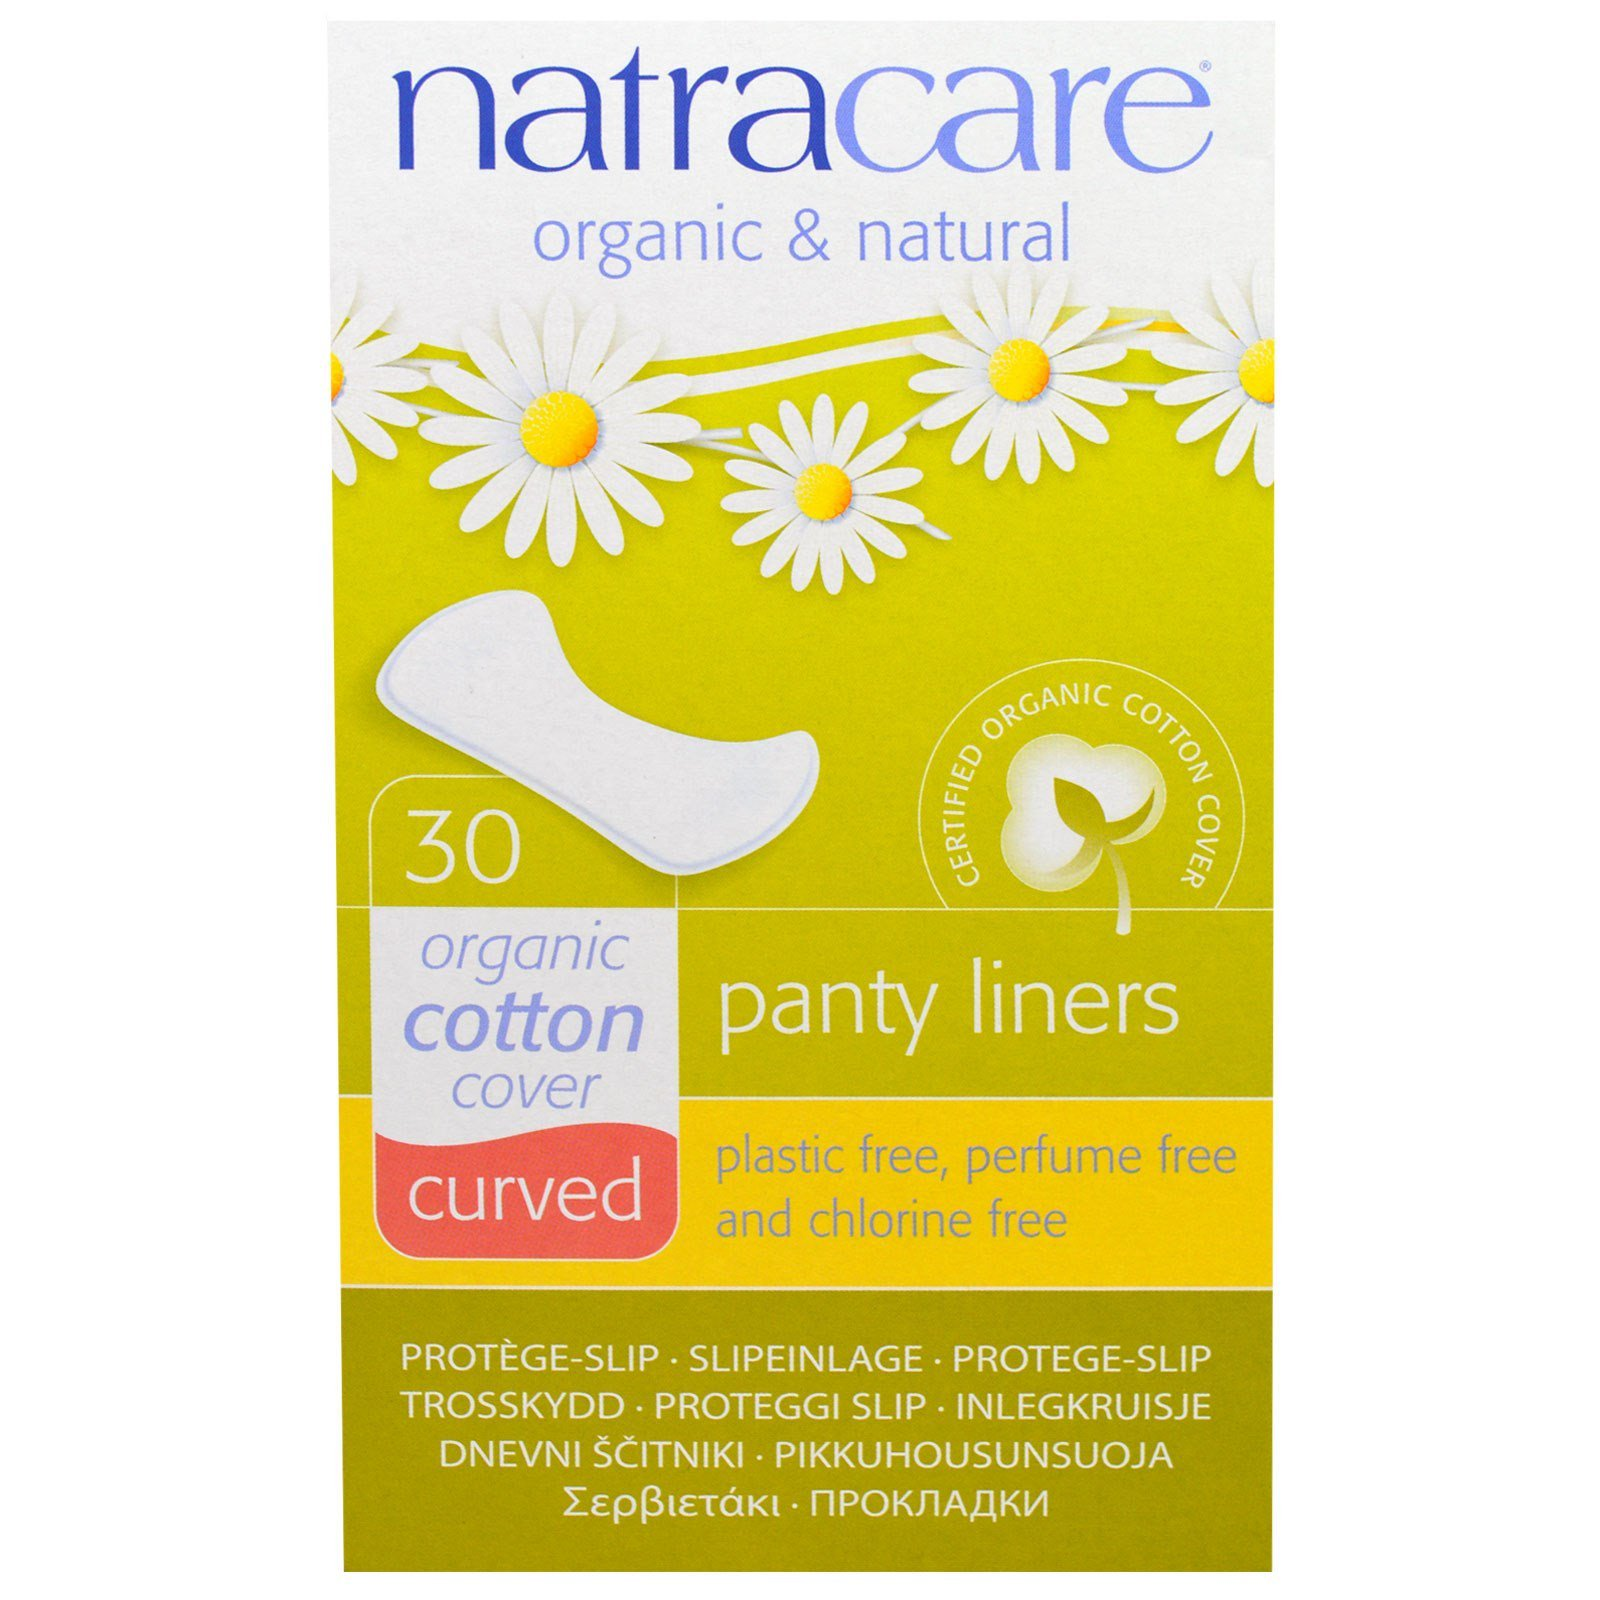 natracare, organic & natural panty liners, curved, 30 liners - iherb